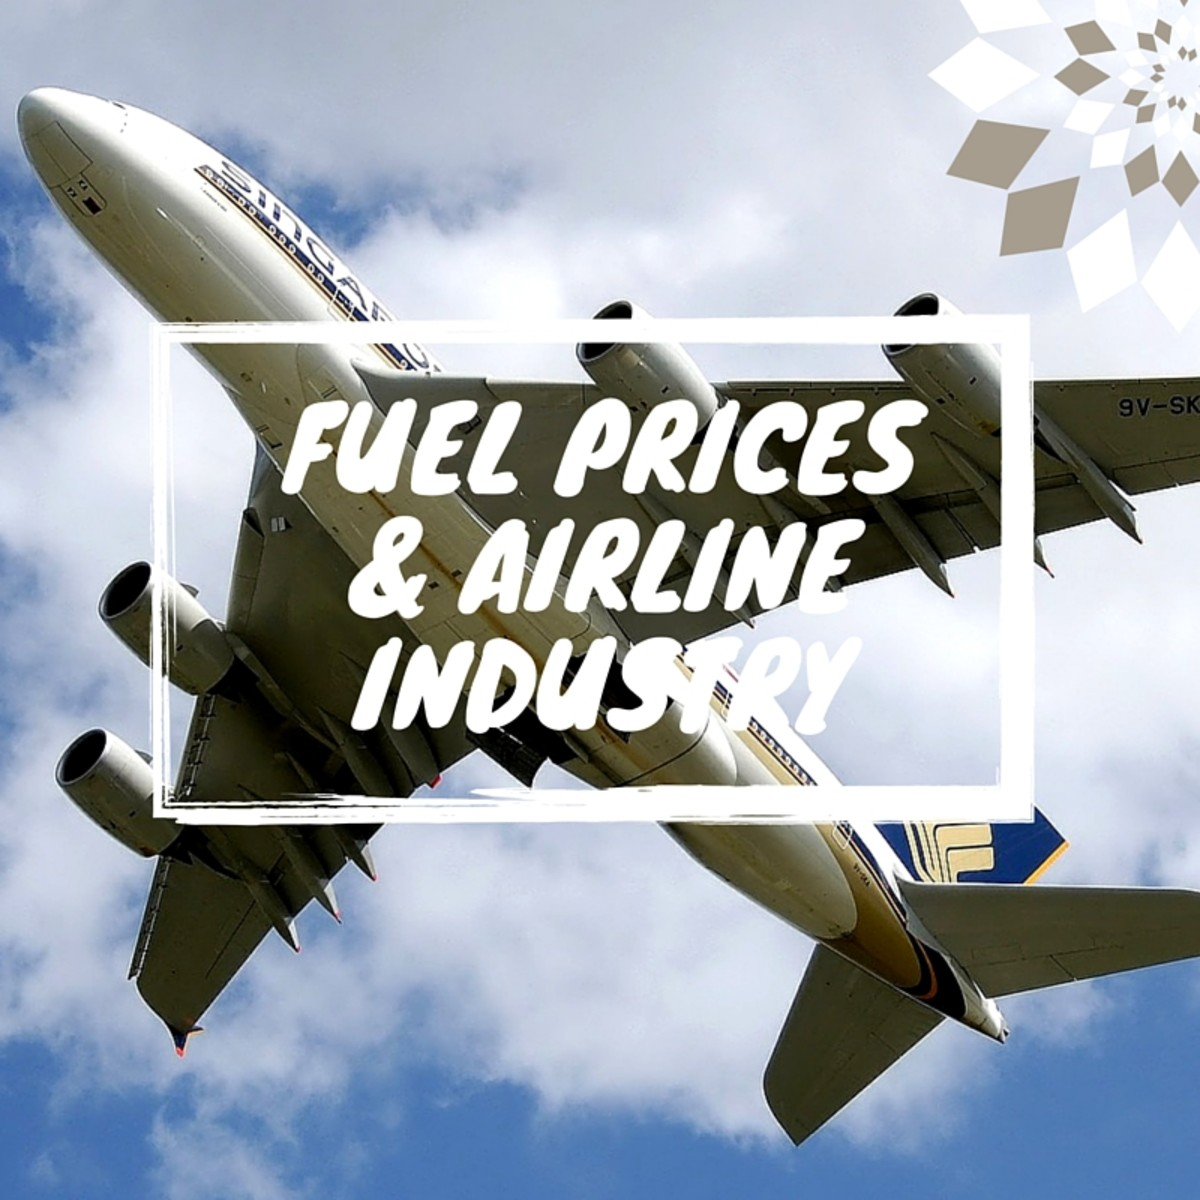 rise-in-fuel-prices-airline-industry